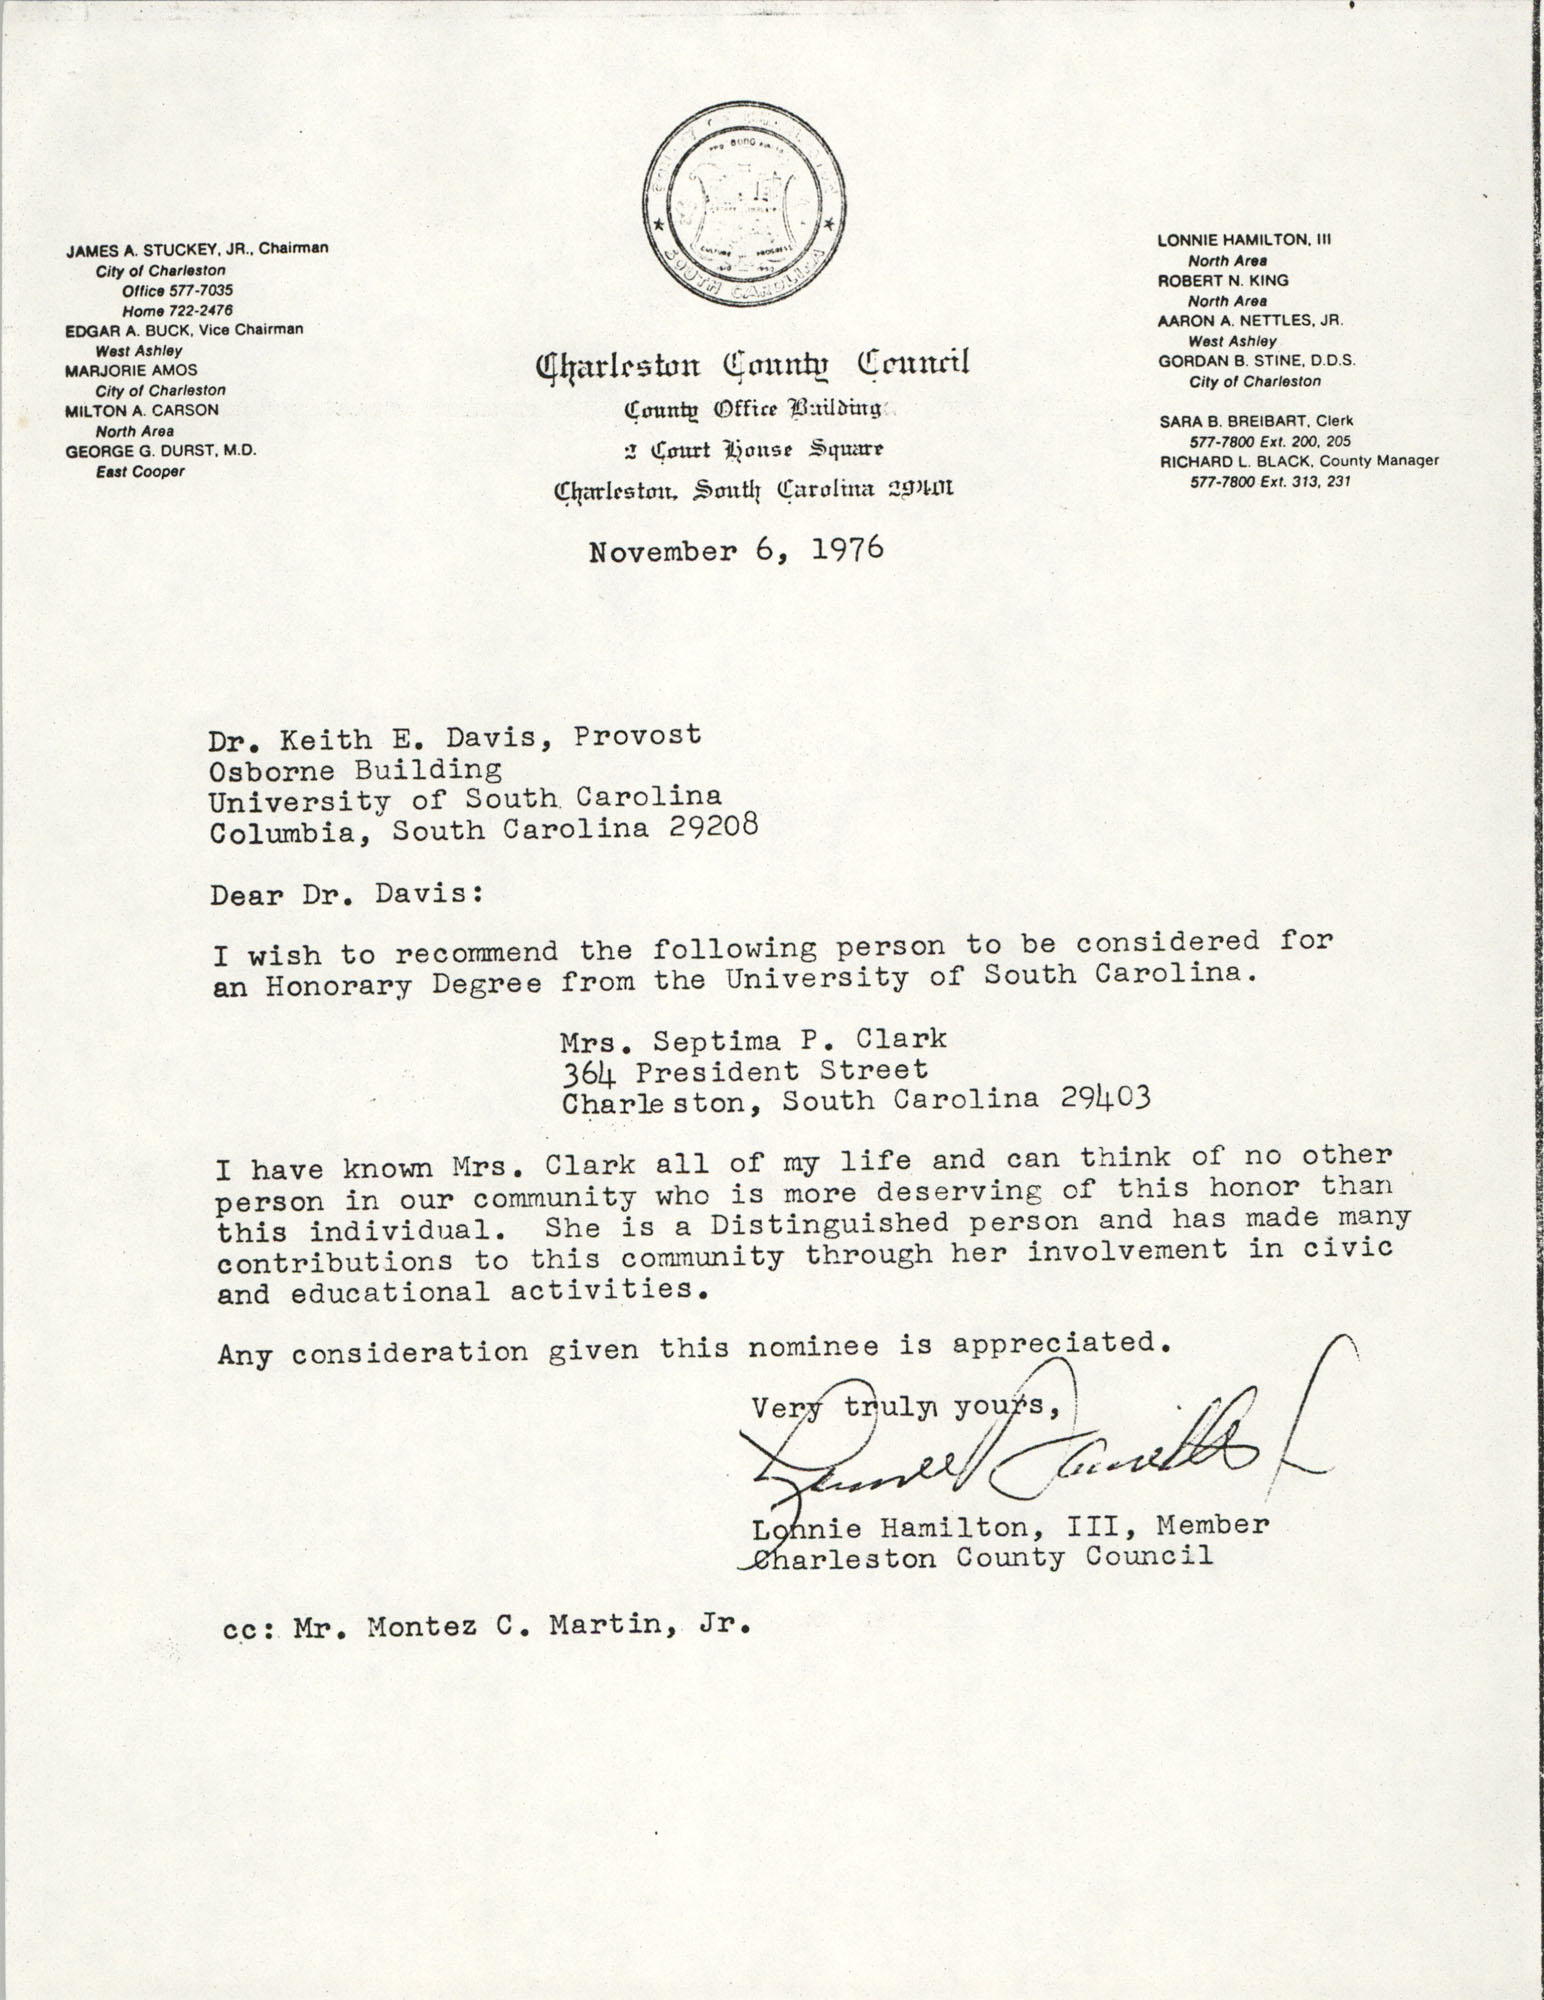 Letter from Lonnie Hamilton, III to Keith E. Davis, November 6, 1976